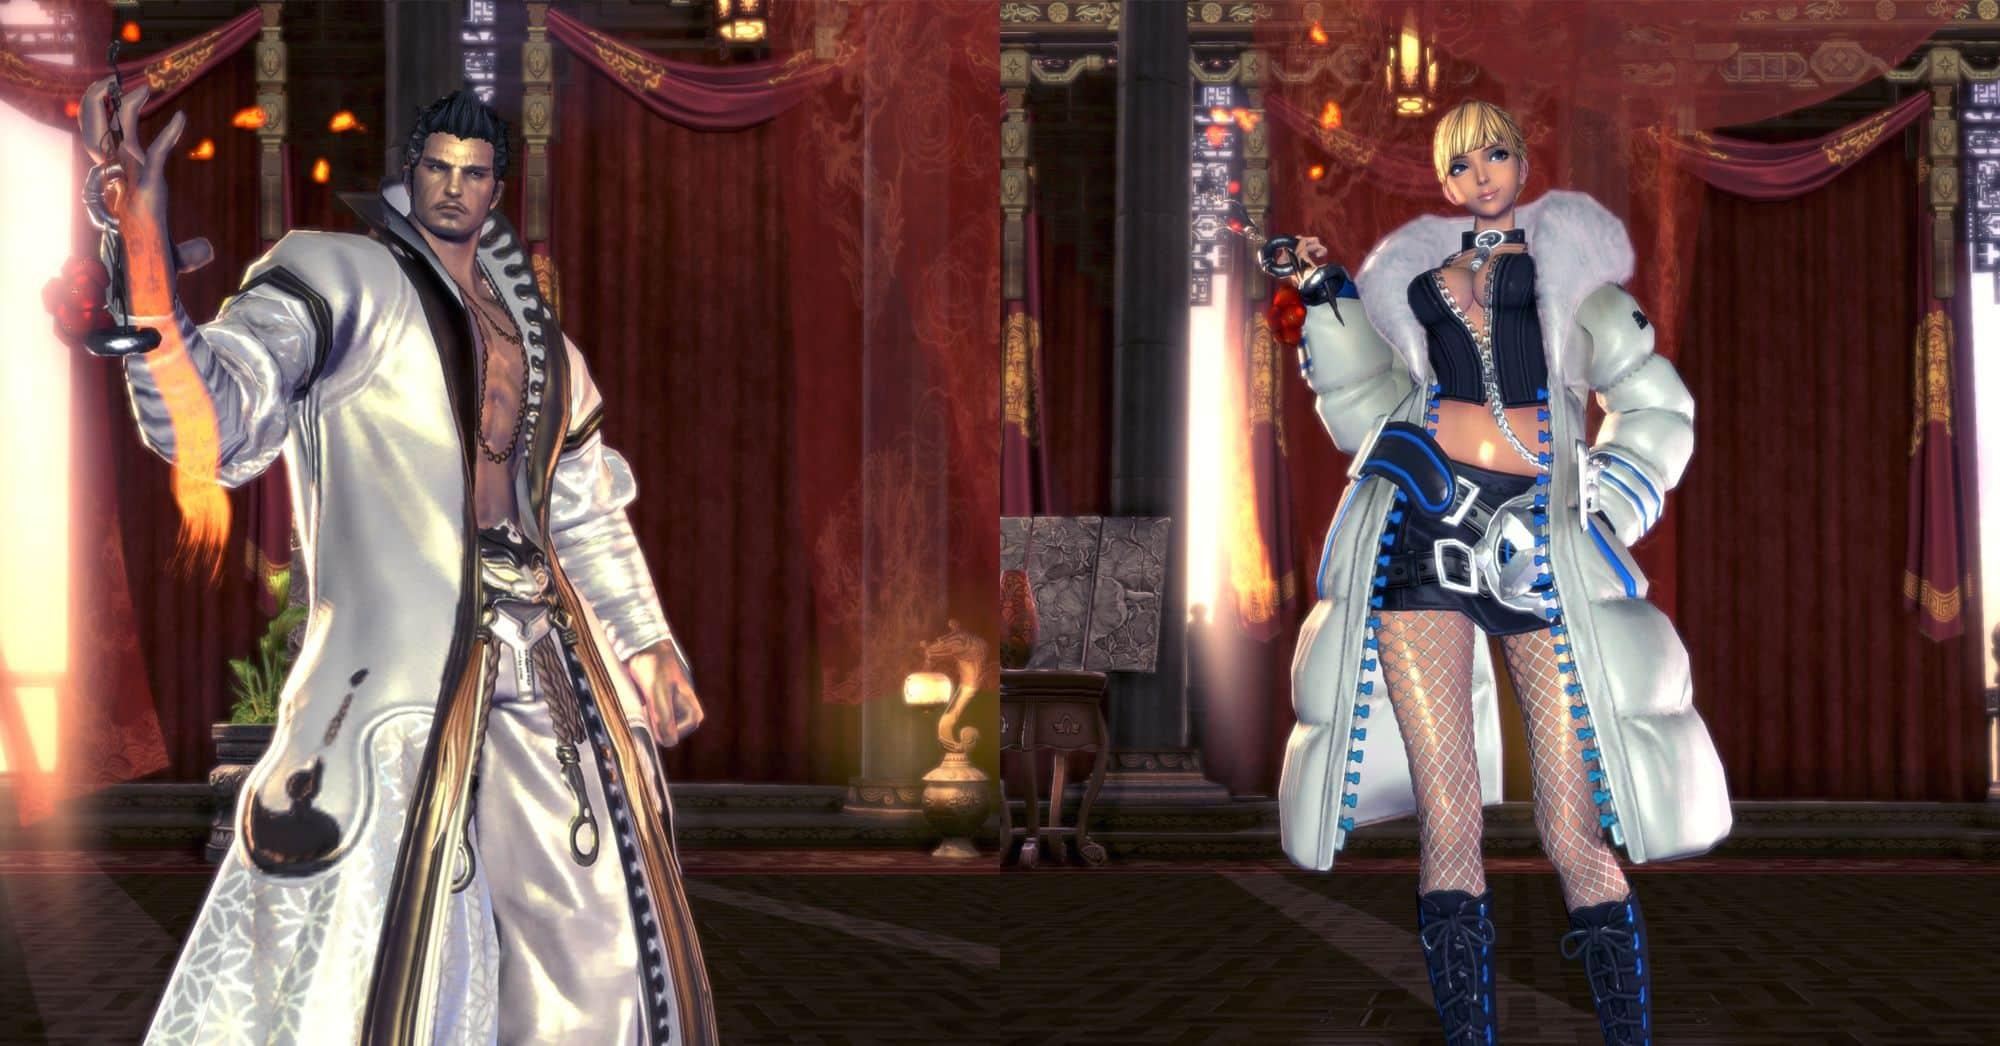 Force Master, Blade & Soul Class, Male Gon & Female Gon